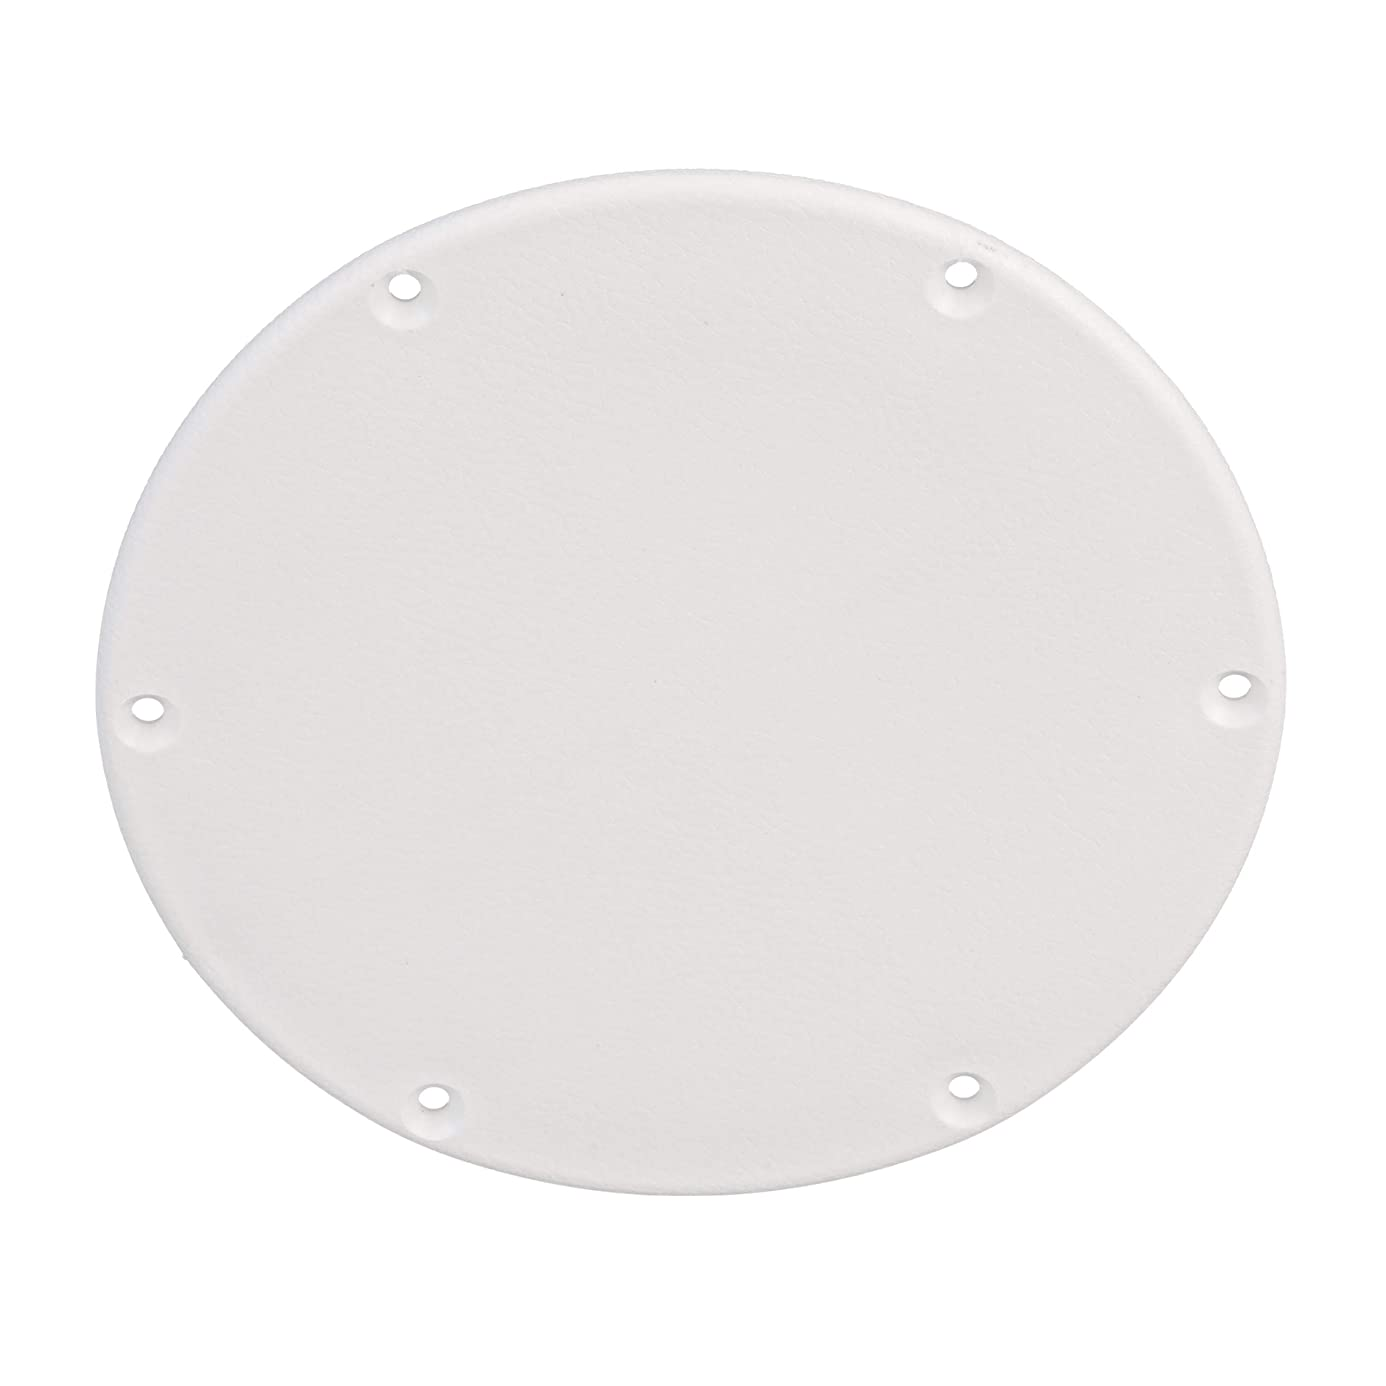 SEACHOICE 39591 Mounted Boat Plate Cover, Arctic White Finish, up to 6 Inches